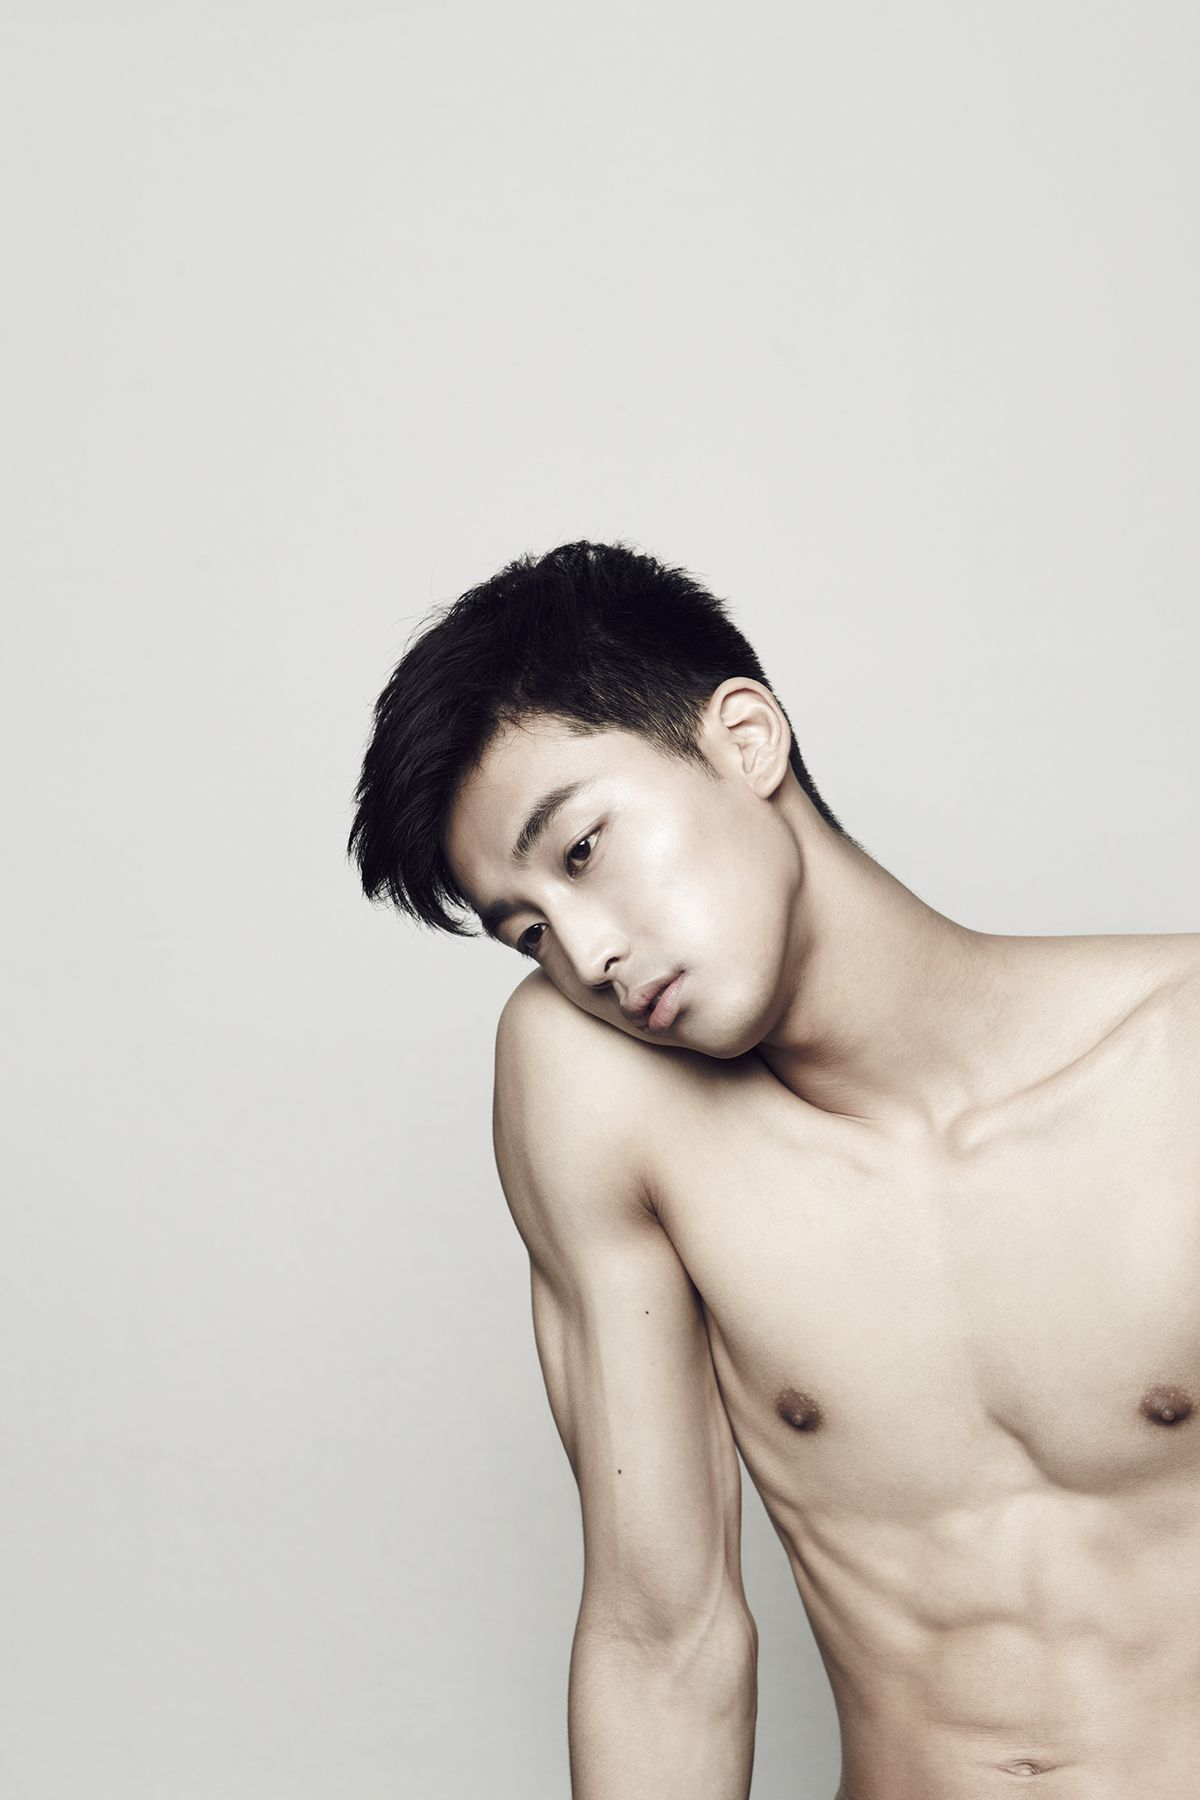 Asian hot male tumblr